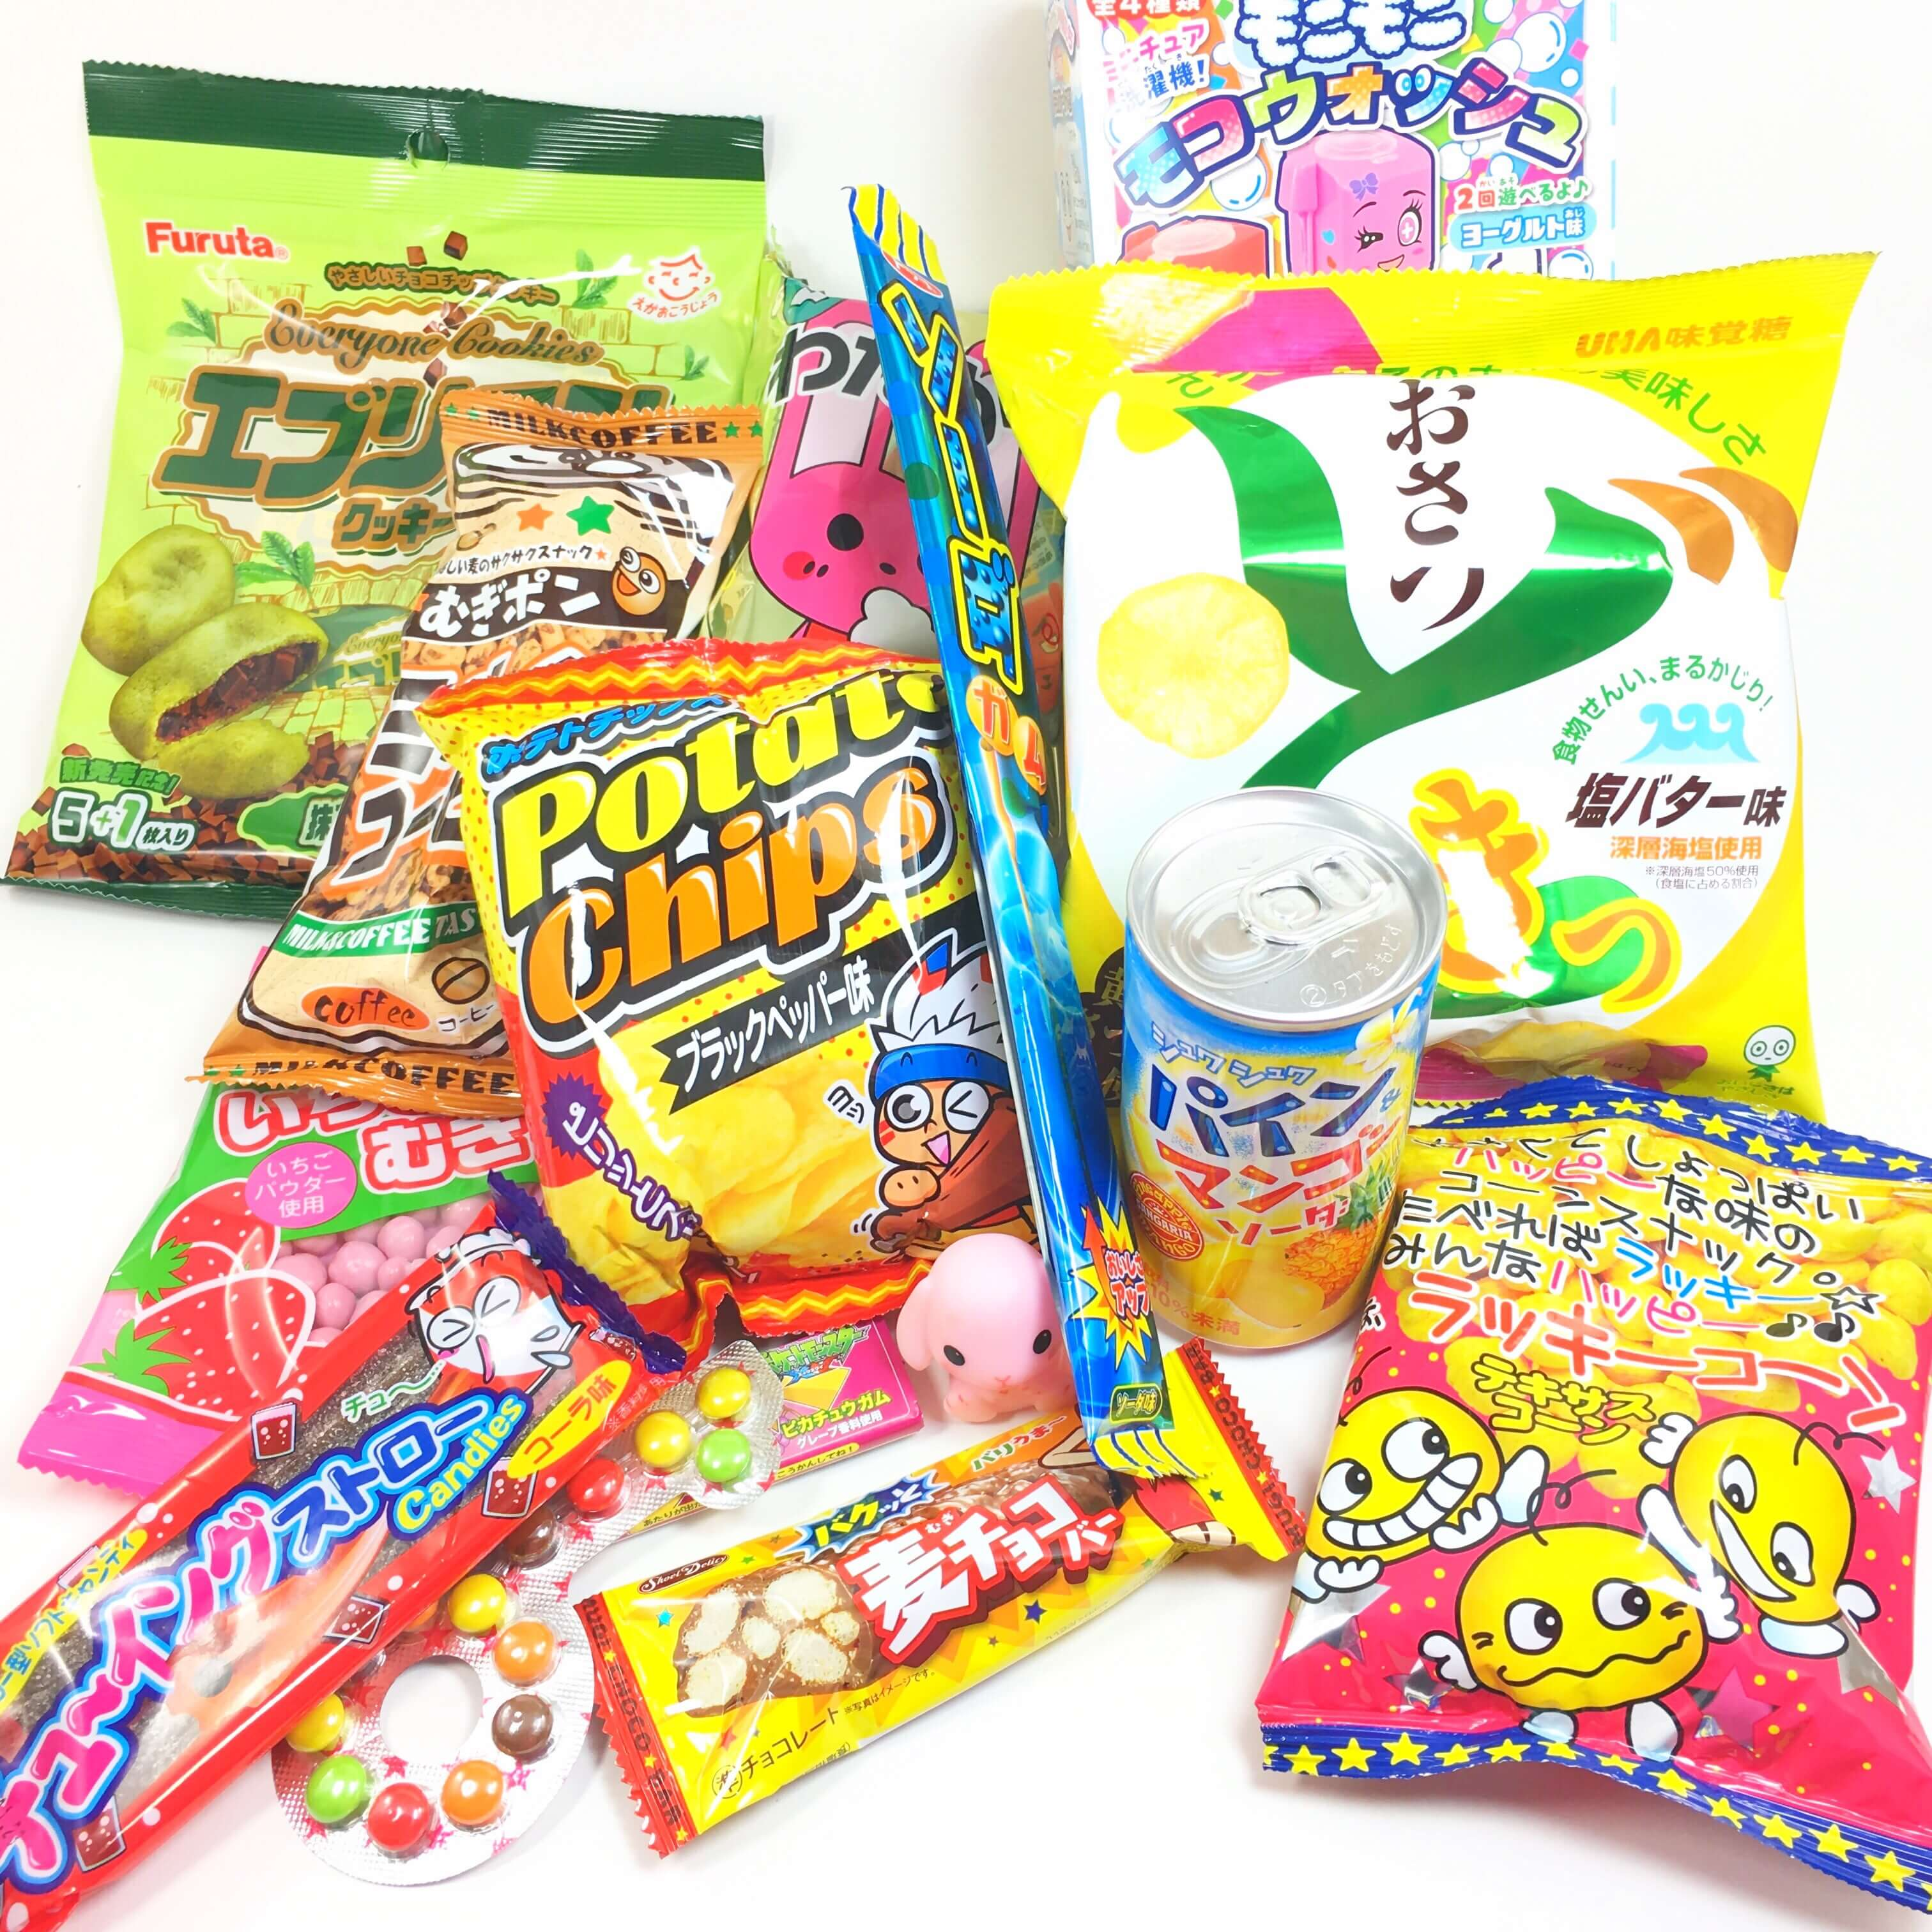 Japan Crate September 2016 Subscription Box Review + Coupon